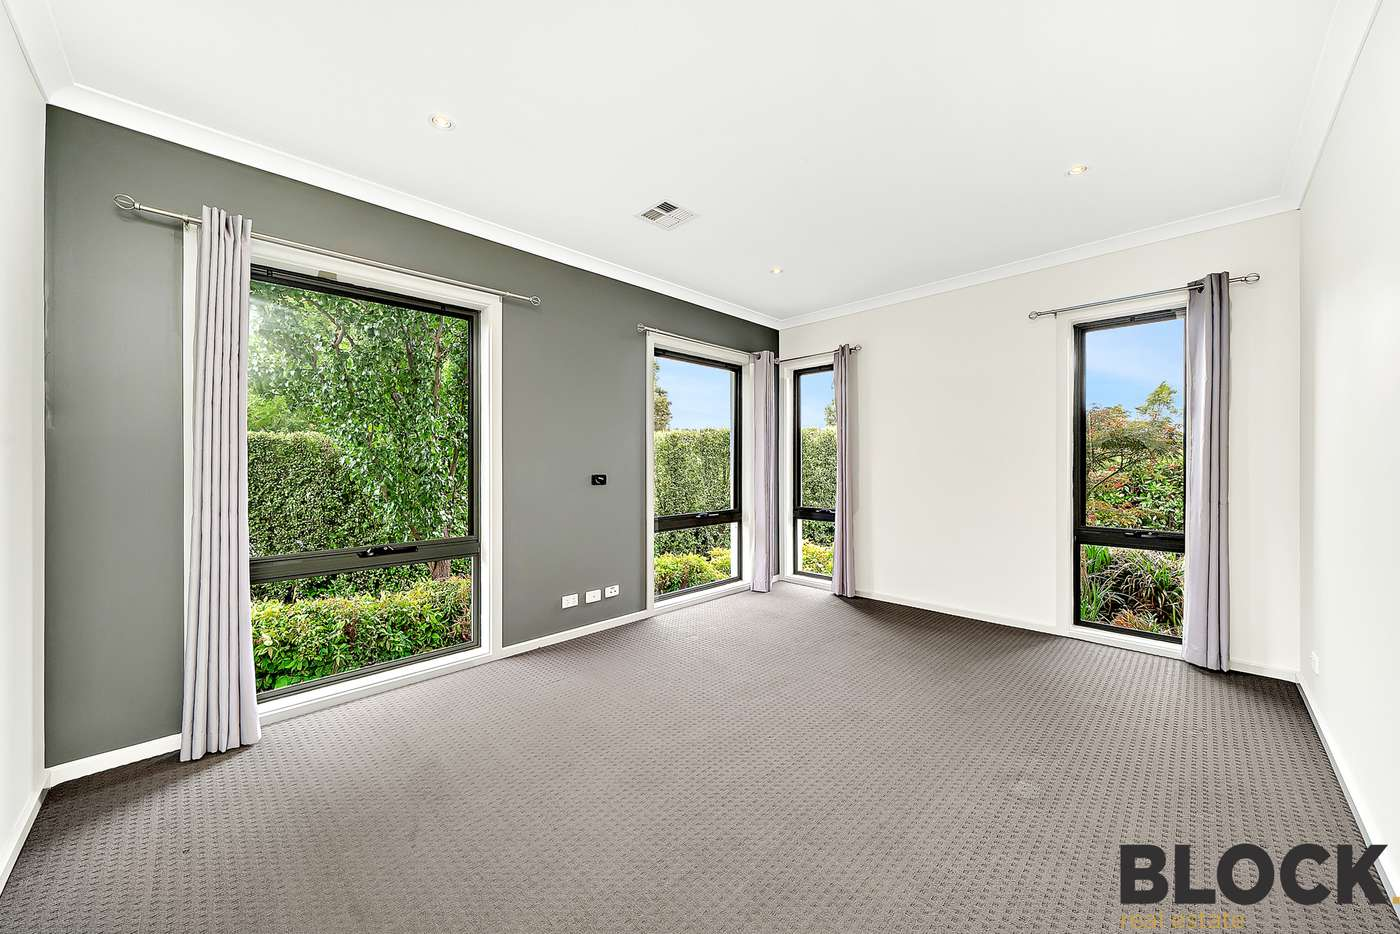 Fifth view of Homely house listing, 52 Chance Street, Crace ACT 2911